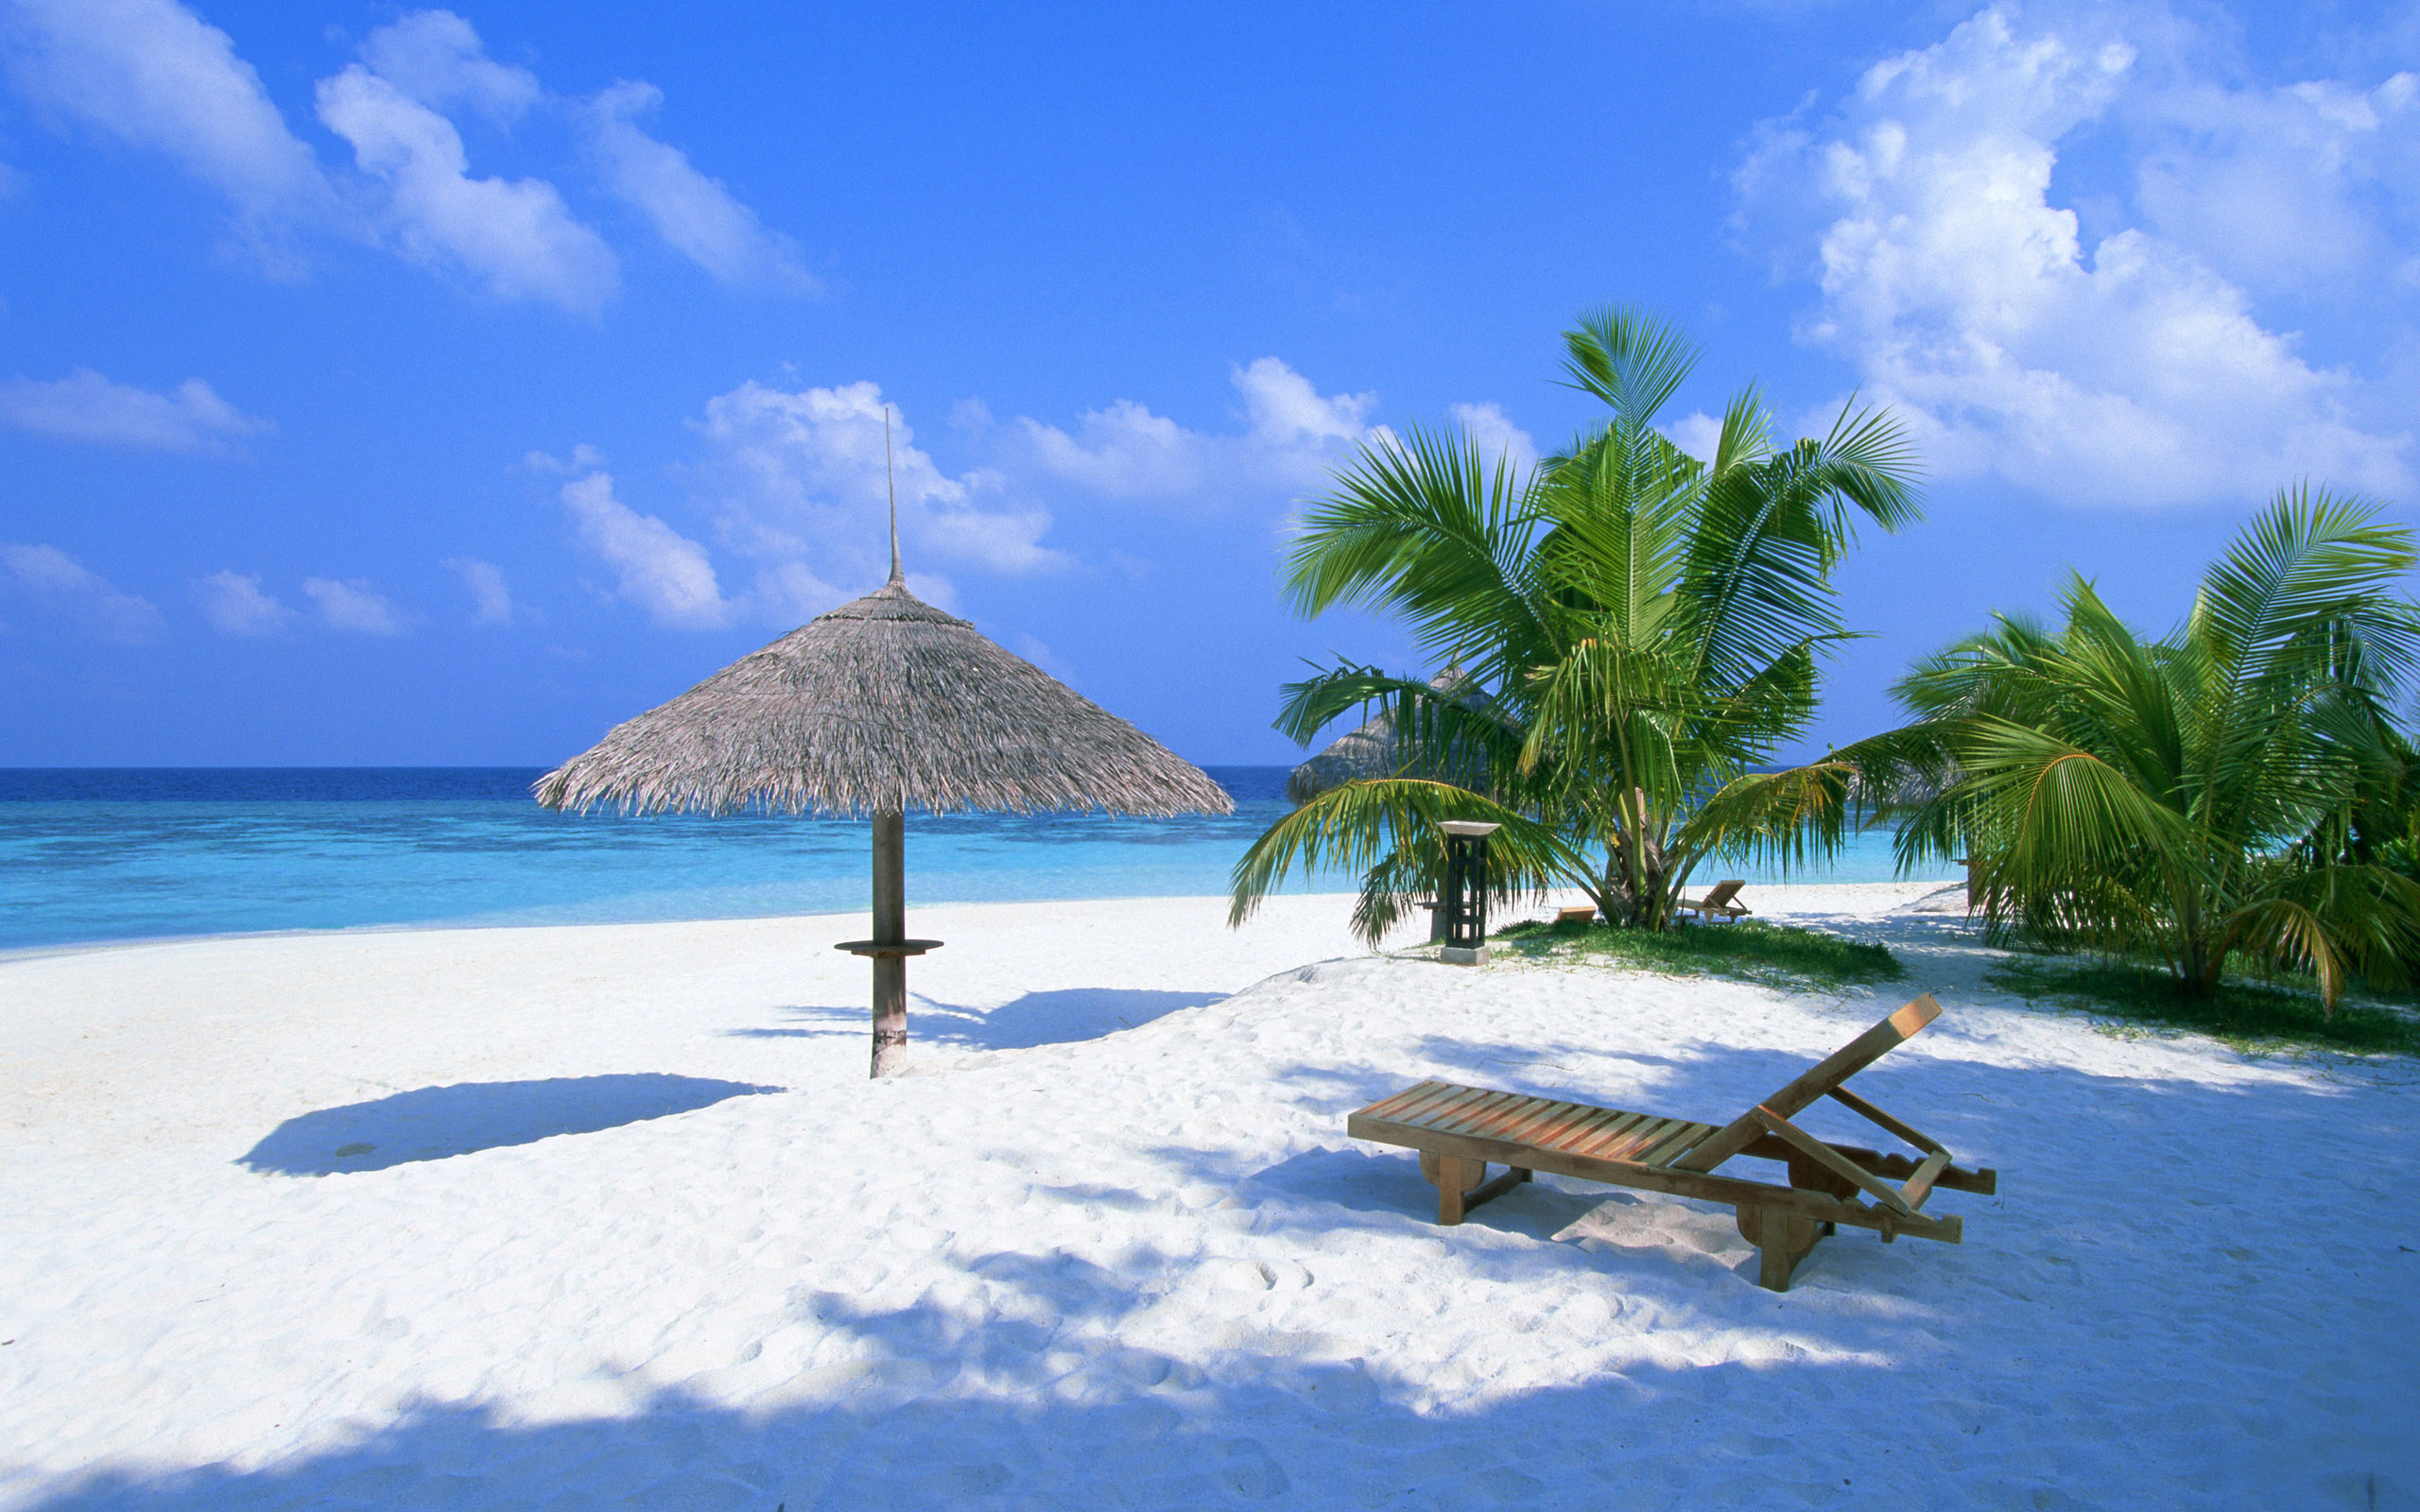 Beach Rest Place HD Wallpaper 2196 HD Wallpaper 3D Desktop 2560x1600